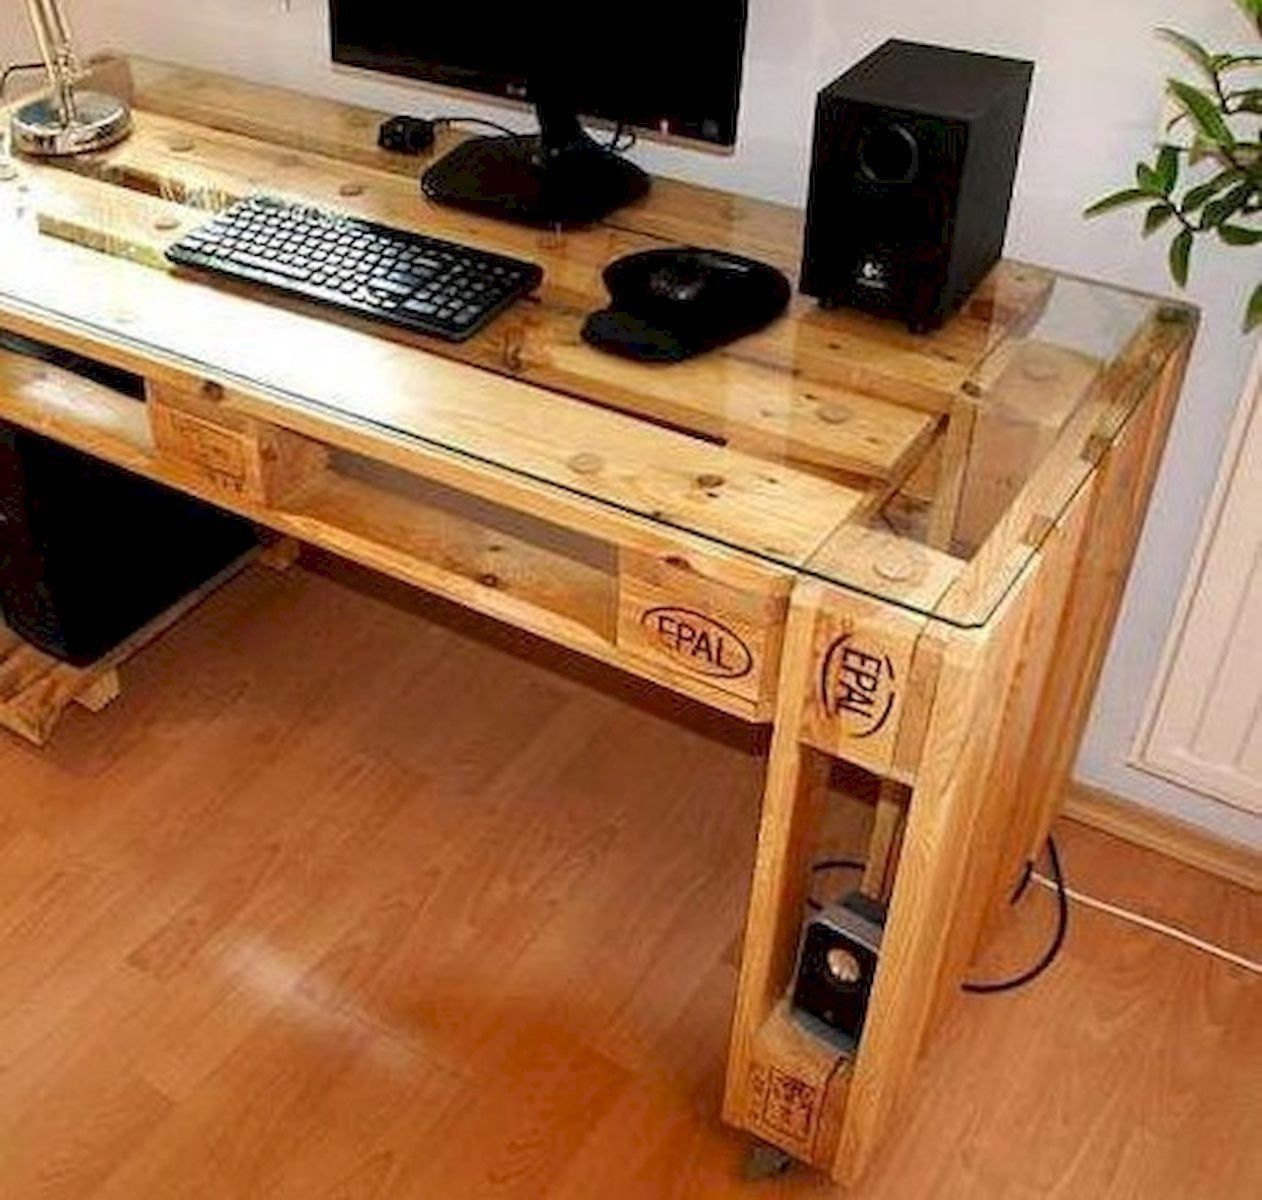 Diy Computer Desk Ideas Best Of 55 Fantastic Diy Puter Desk Design Ideas And Decor 26 In In 2020 Computer Desk Design Wooden Computer Desks Woodworking Desk Plans